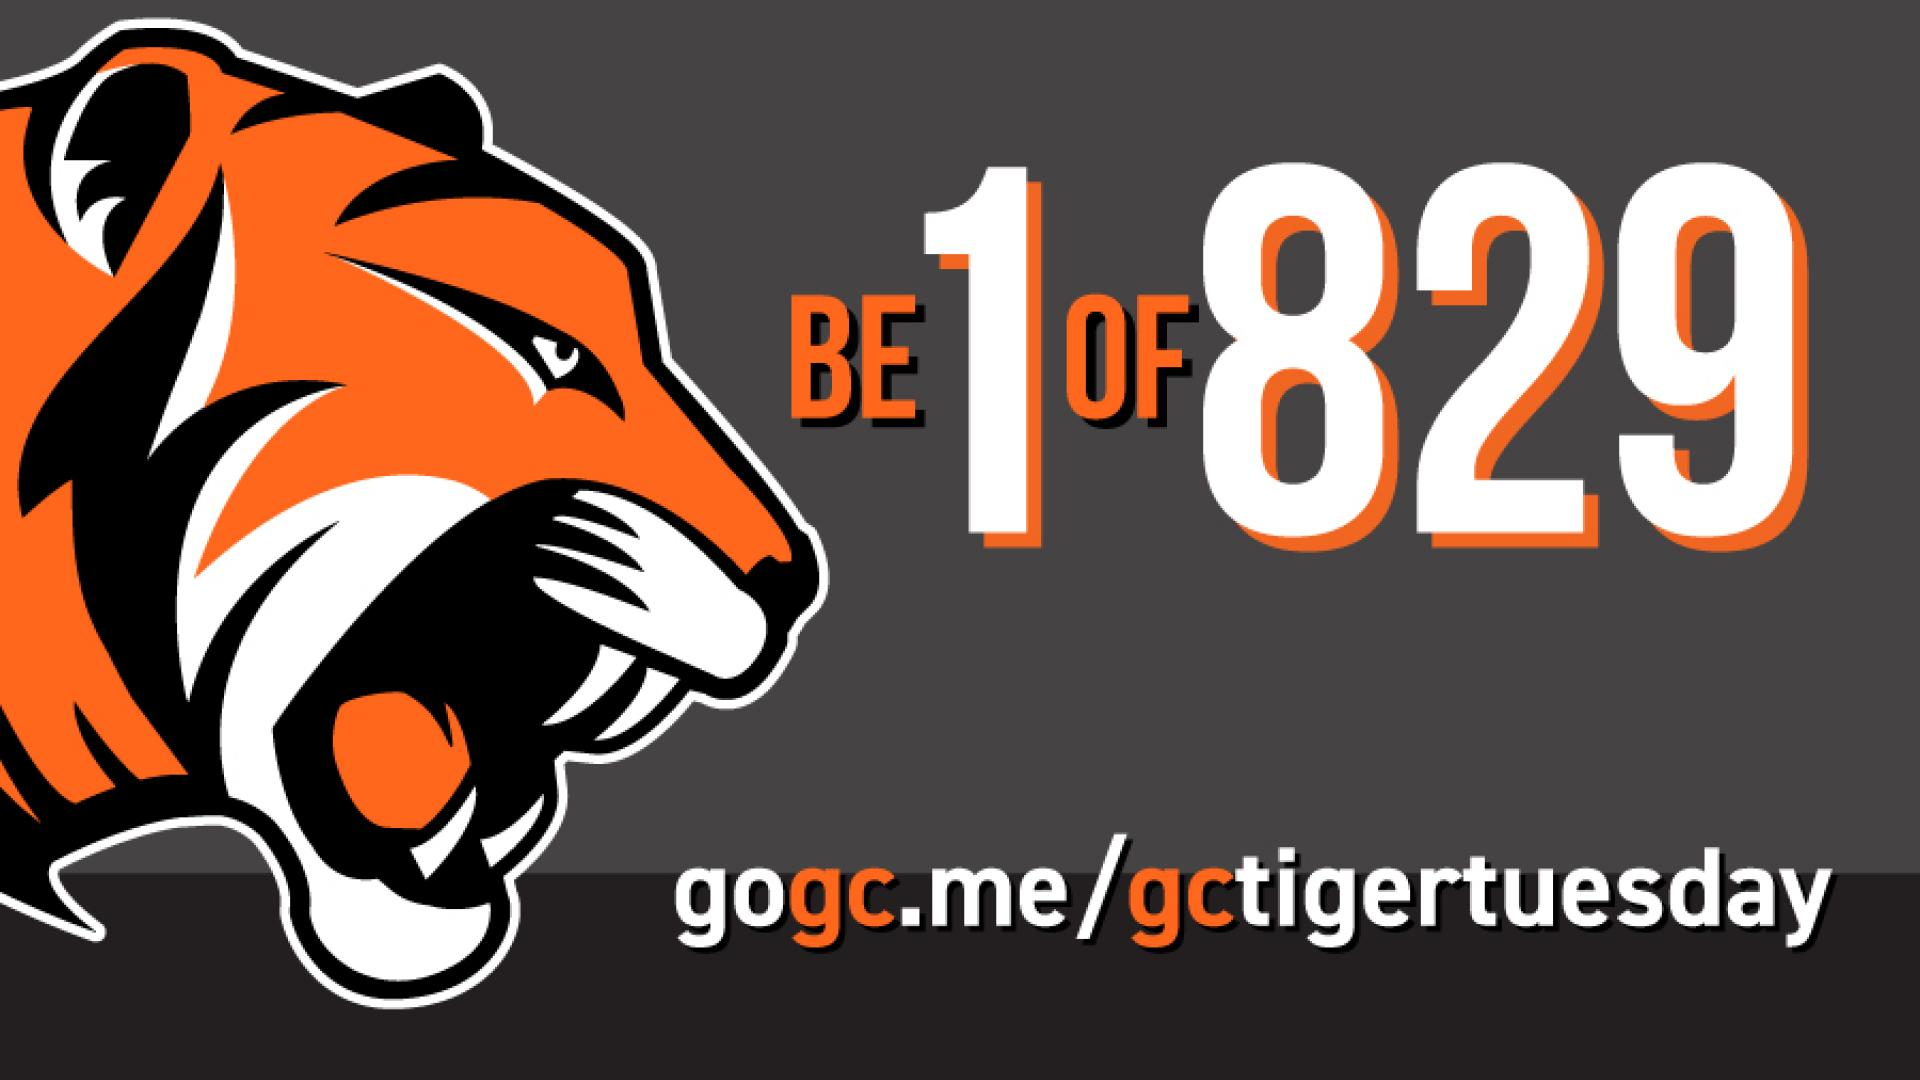 #GCTigerTuesday, a Day of Giving